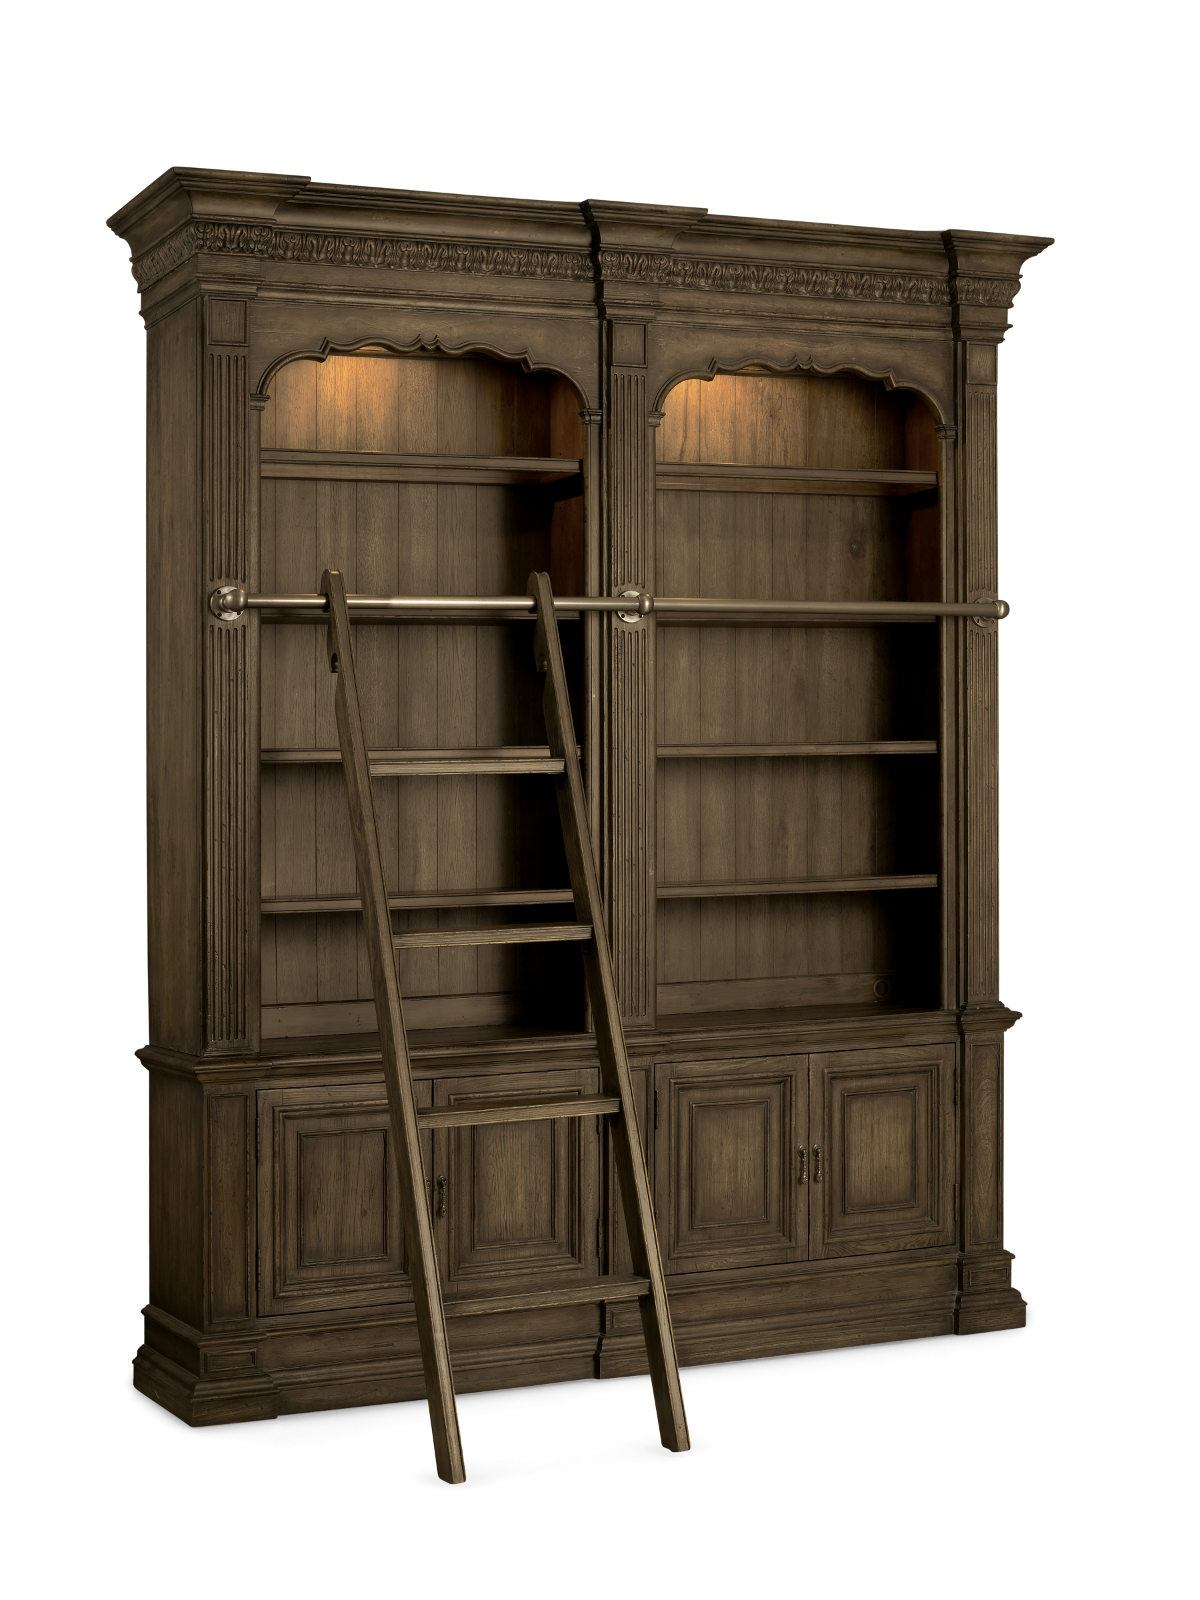 Hooker Furniture Rhapsody Double Bookcase With Ladder And Rail